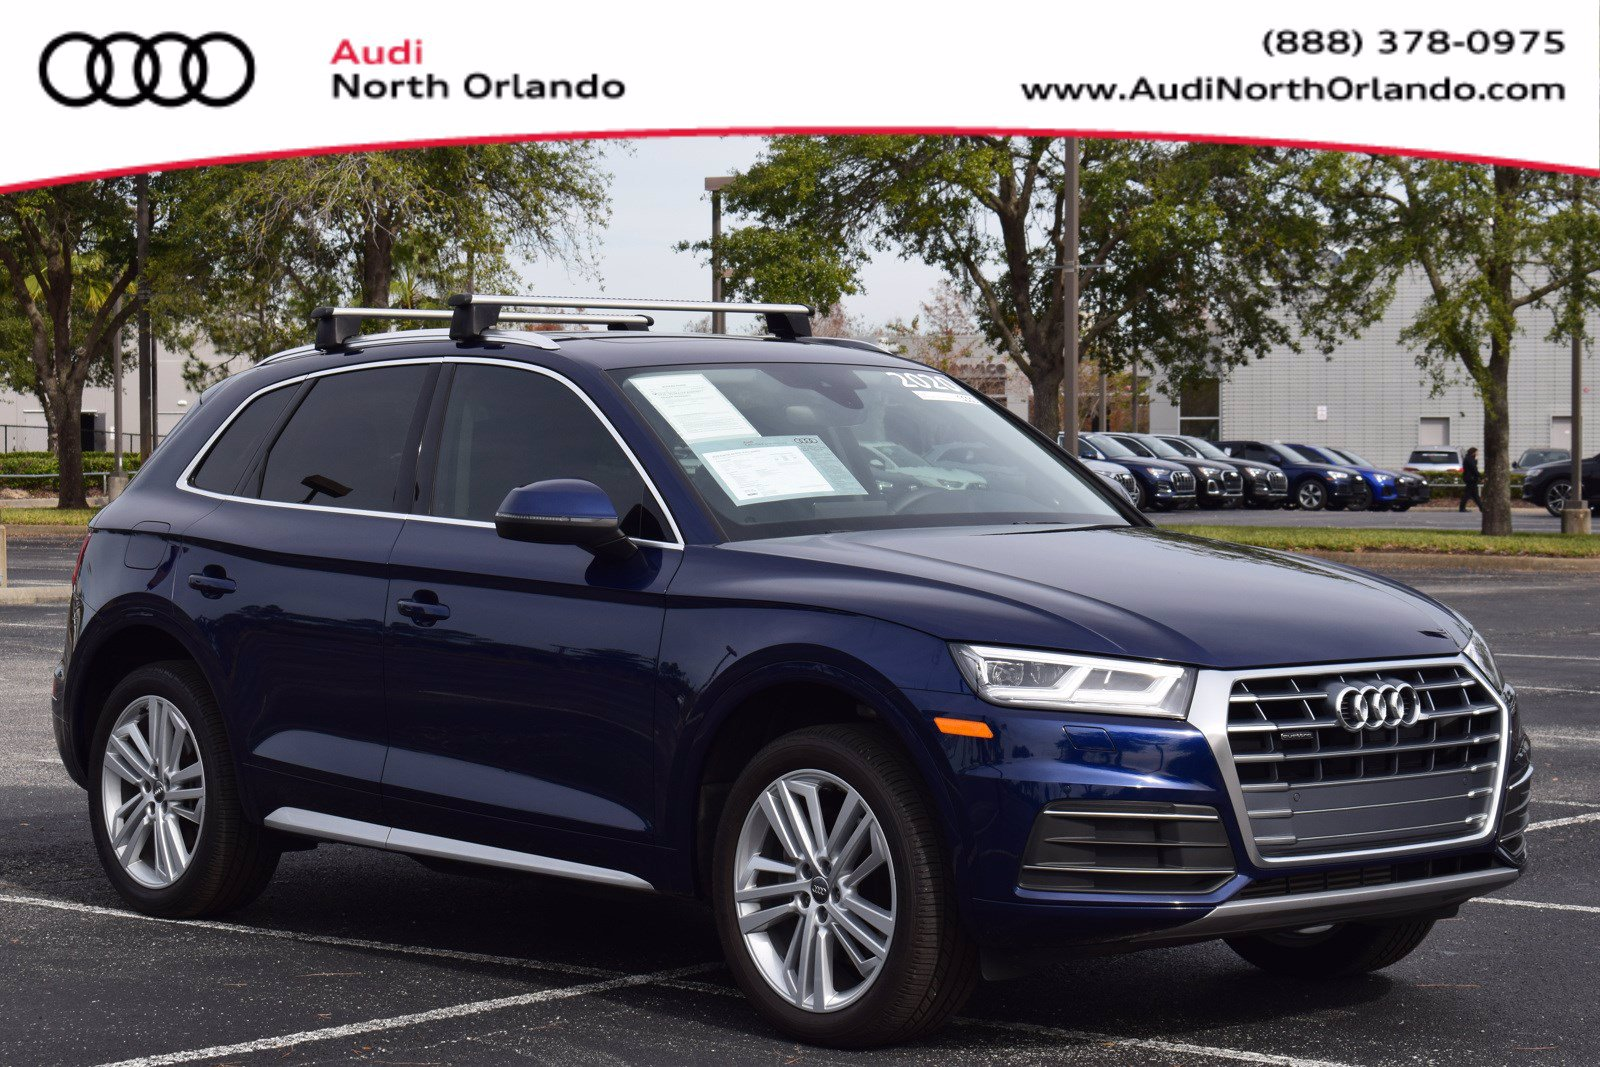 Used Audi Q5 Sanford Fl